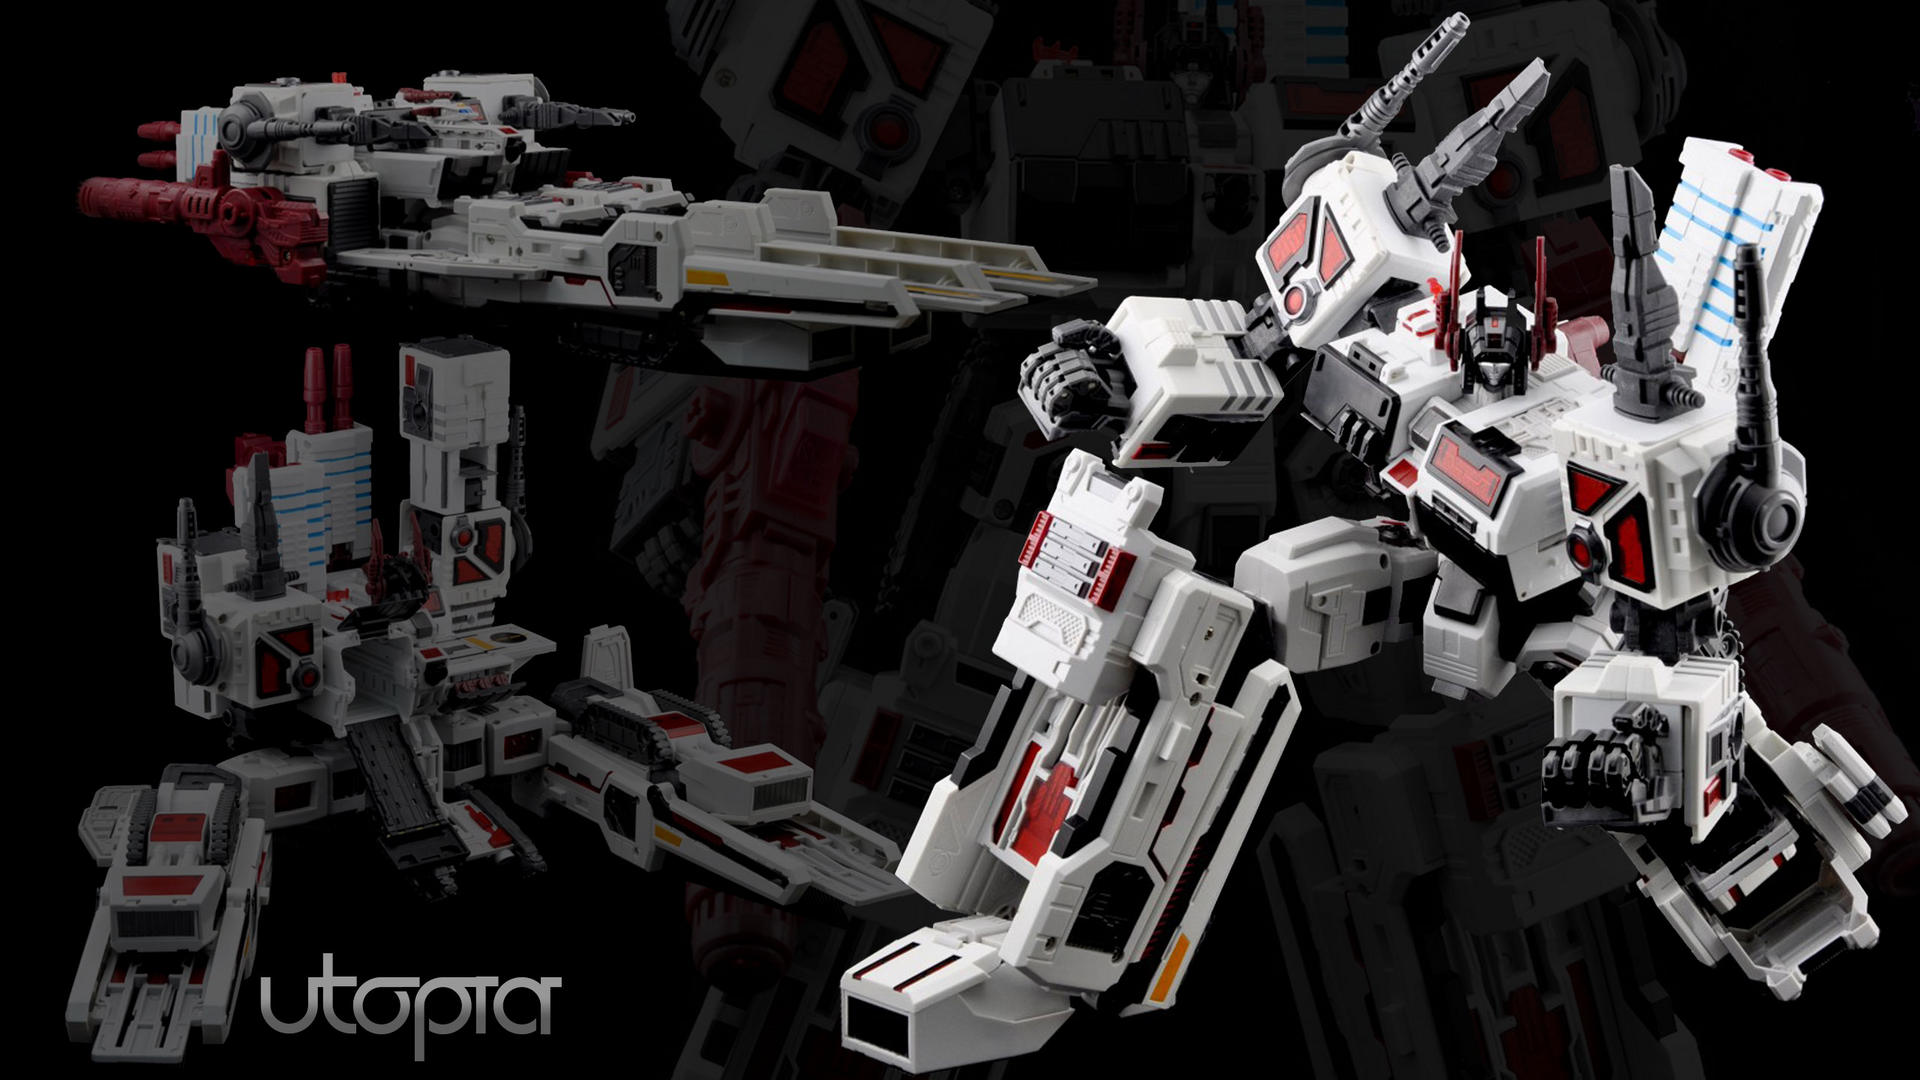 Maketoys MCB-02 Utopia